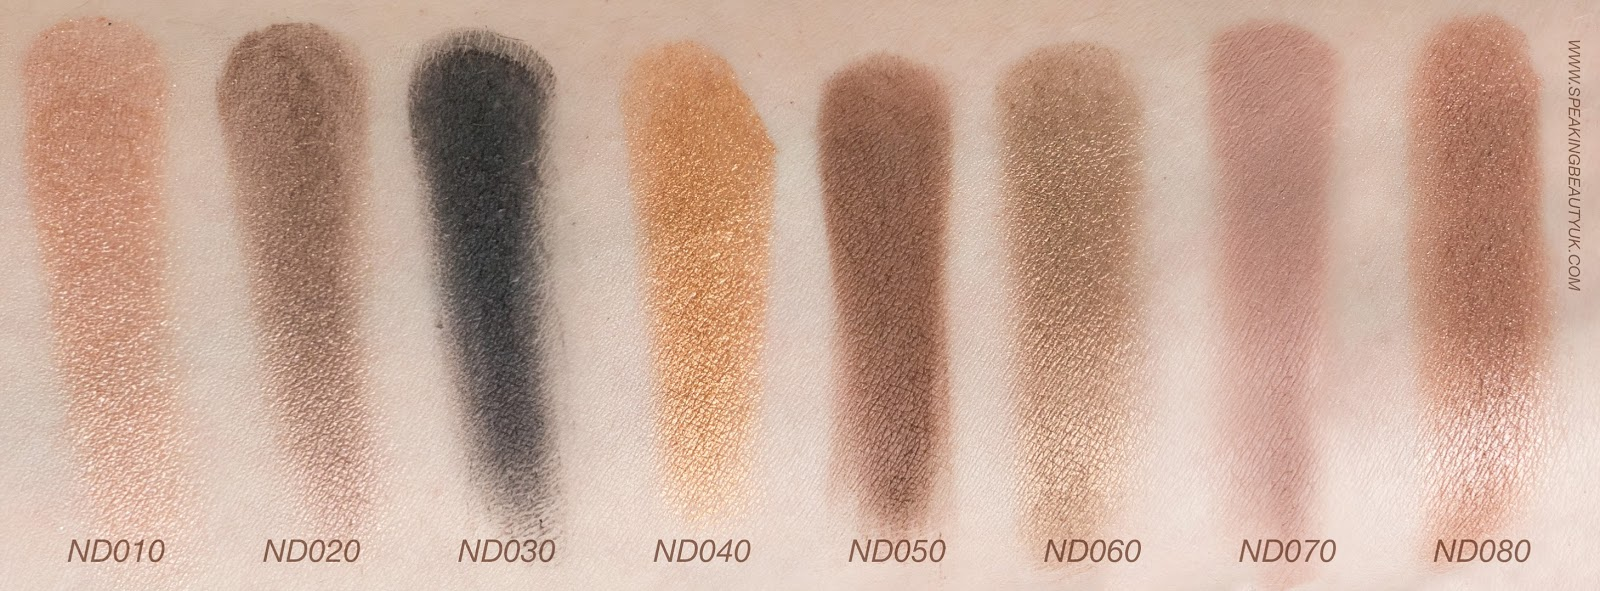 Nude Spectrum Eyeshadow Palette  by zoeva #4